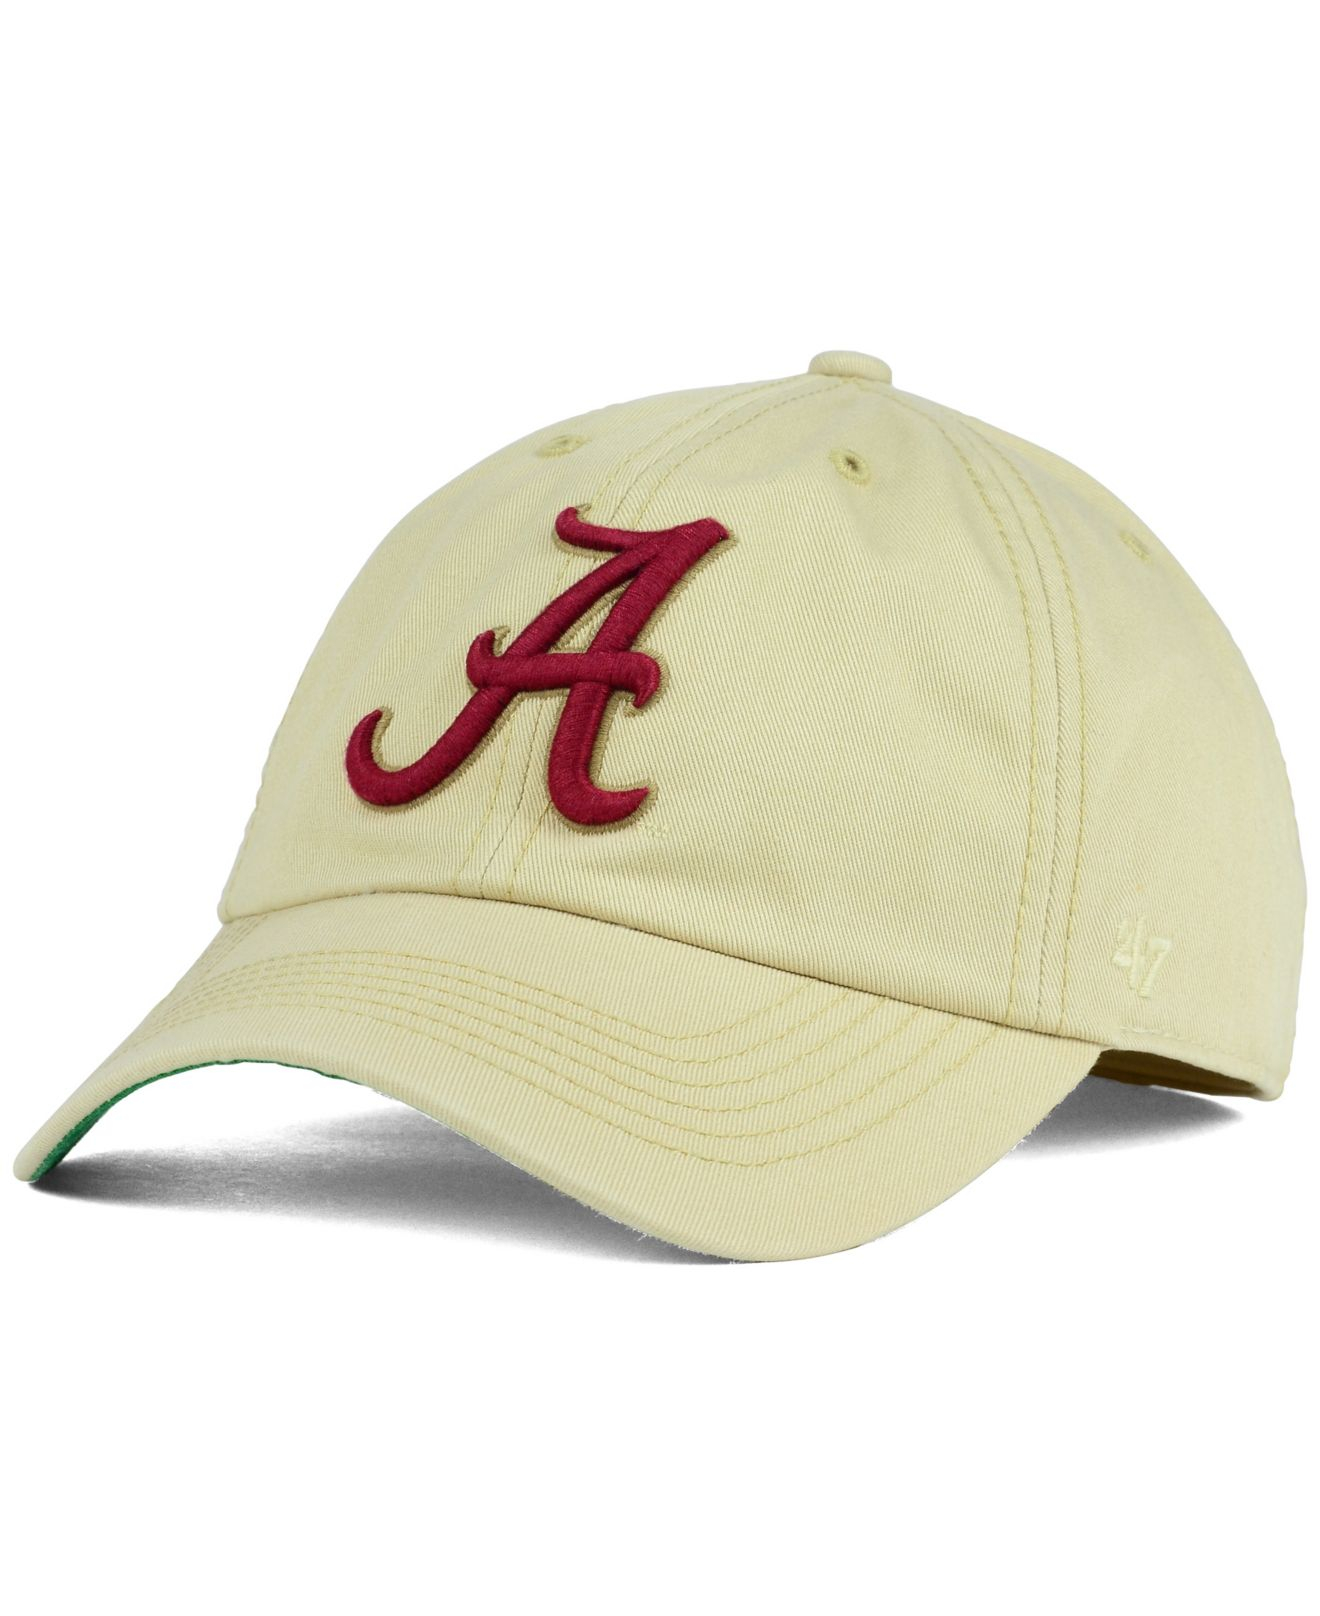 new products 7747e 93ed7 ... australia stanford cardinal 47 brand ncaa sahara lawrence 47 franchise  cap natural hsc572208 lyst 47 brand